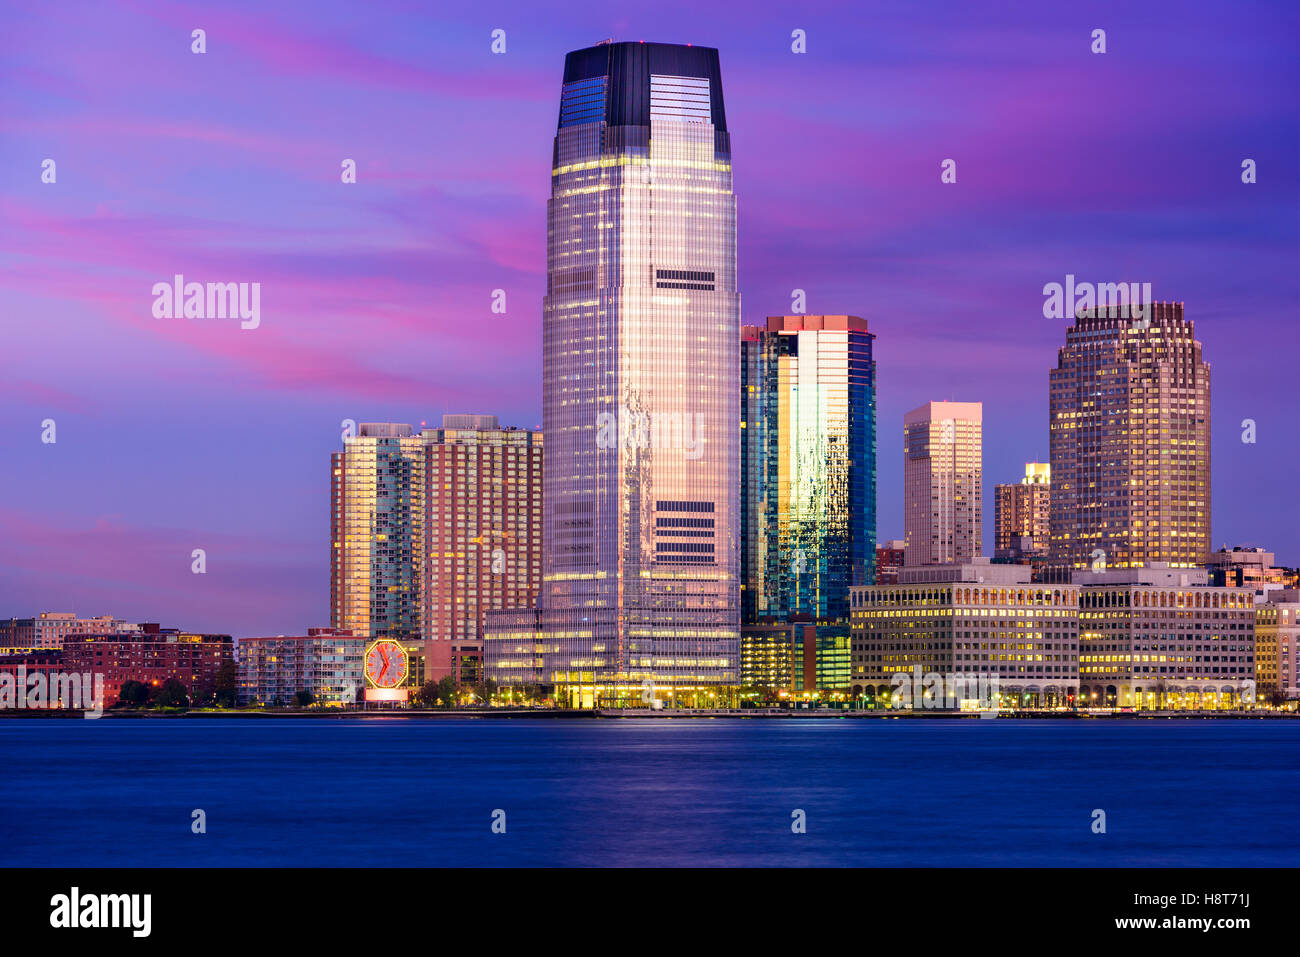 Exchange Place, Jersey City, New Jersey, USA skyline on the Hudson River. - Stock Image